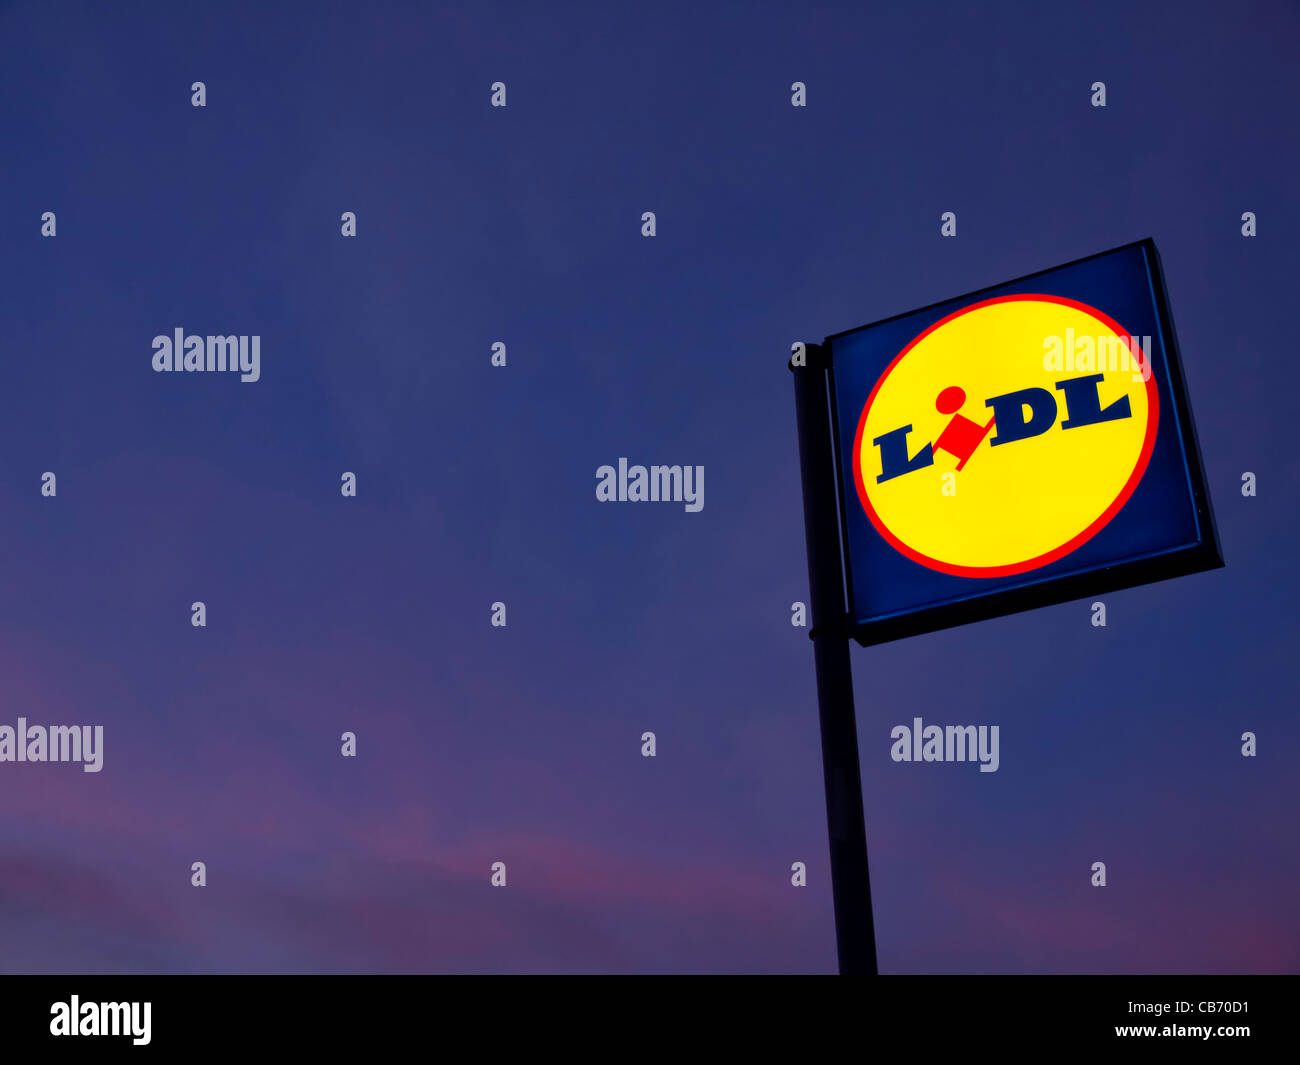 Lidl Europe Stock Photos & Lidl Europe Stock Images - Alamy